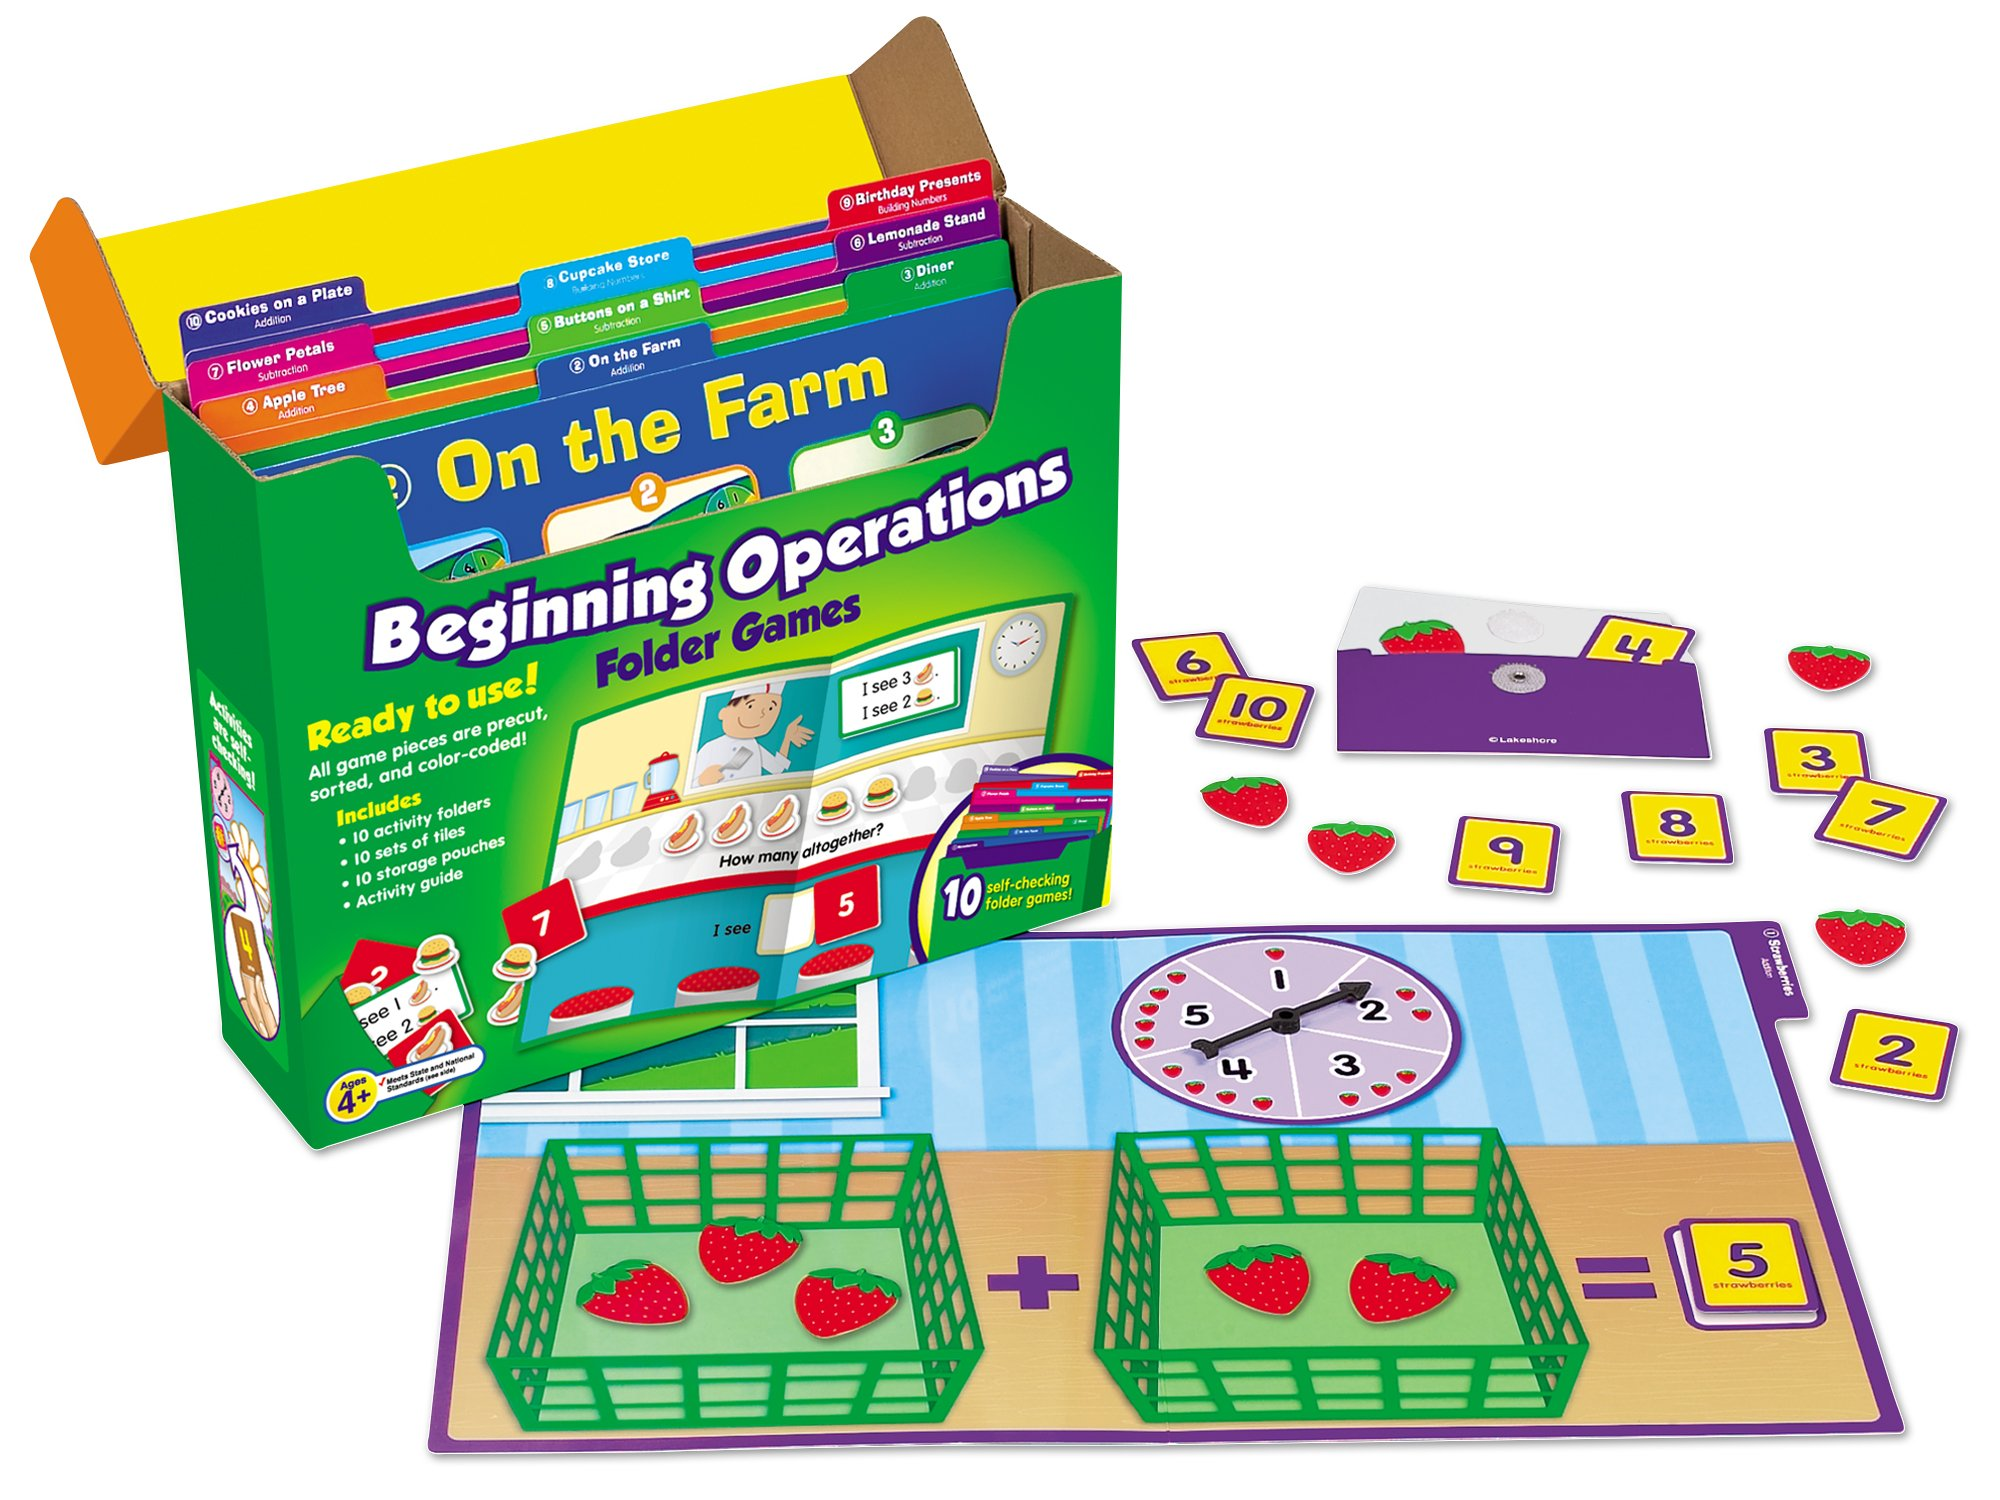 Lakeshore Early Math File Folder Game Libraries - Pre K-K - Complete Set by Lakeshore Learning Materials (Image #3)